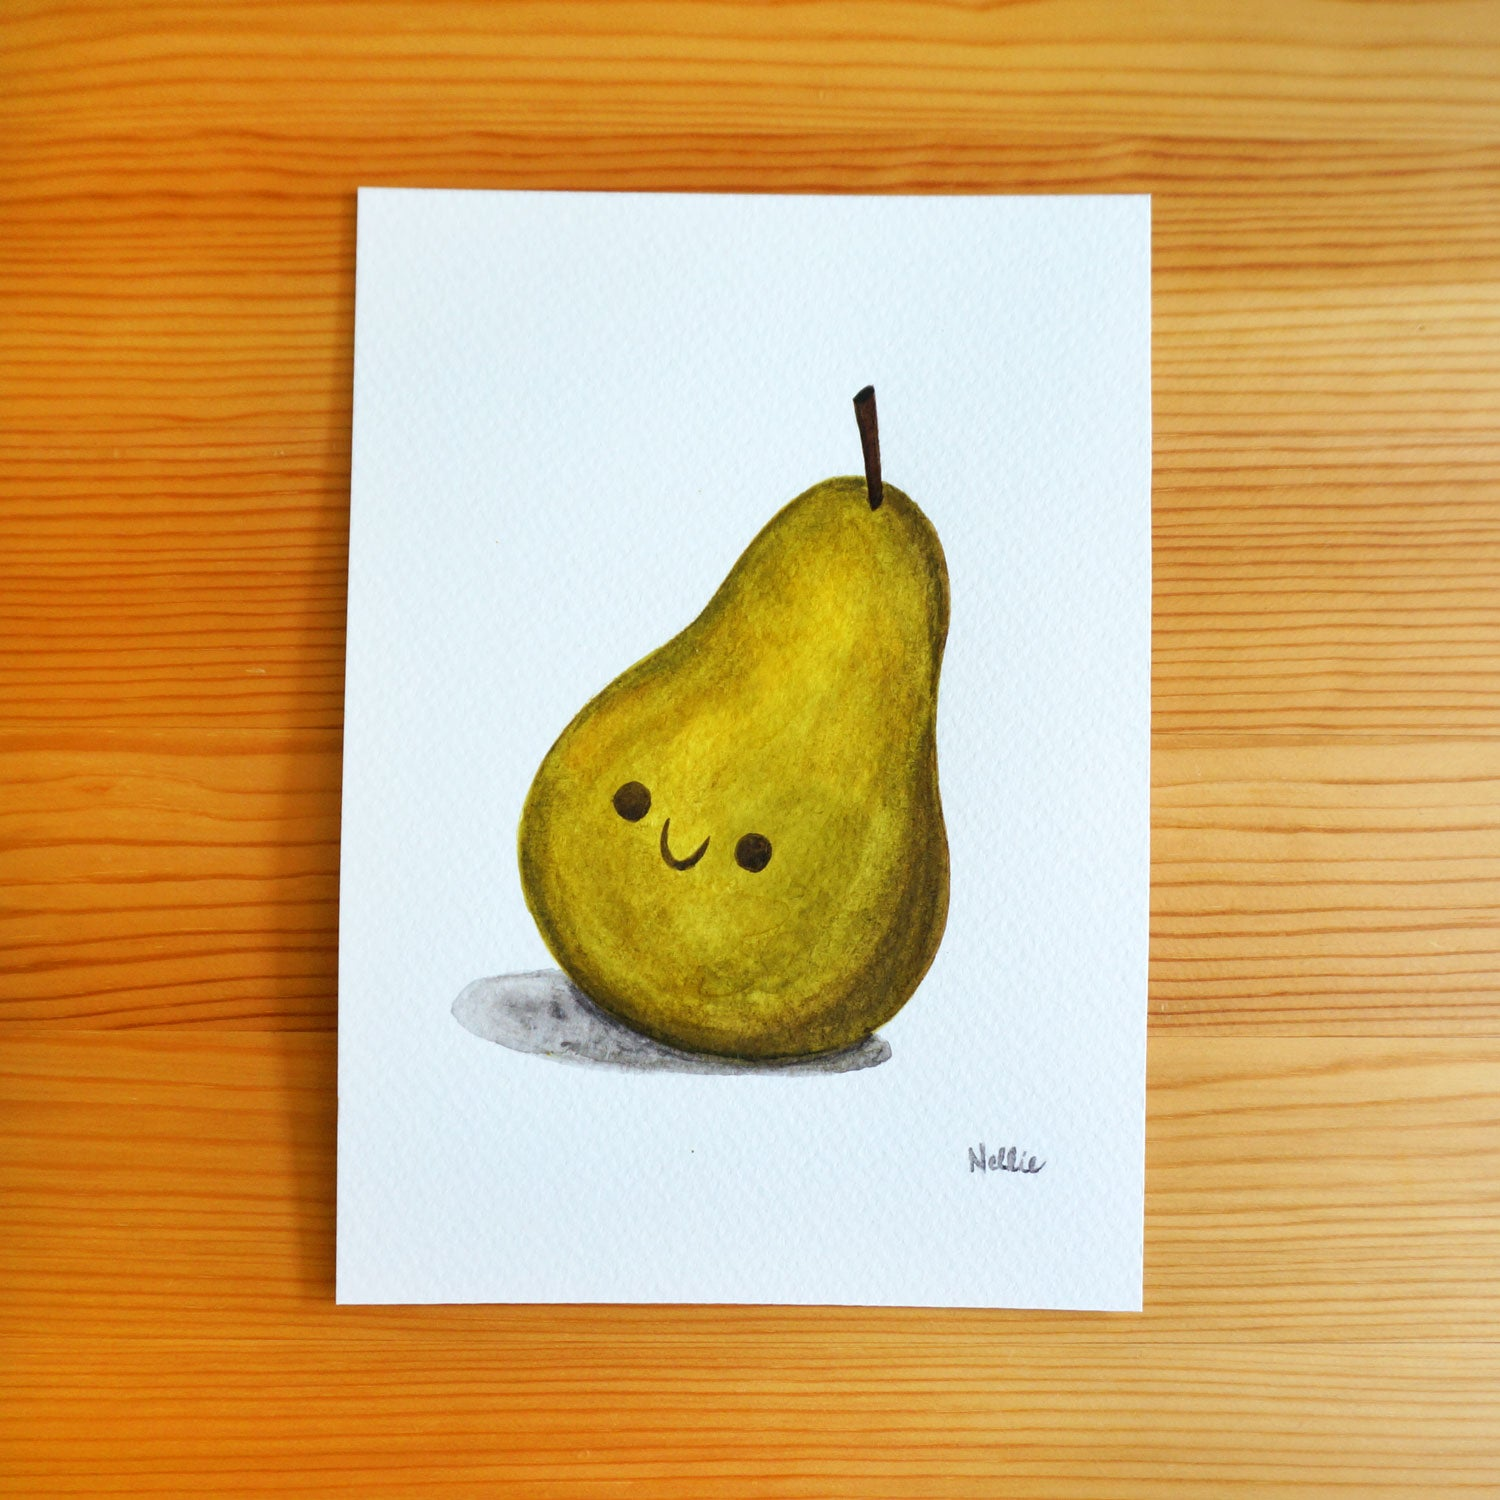 Pear Friend - Original Painting